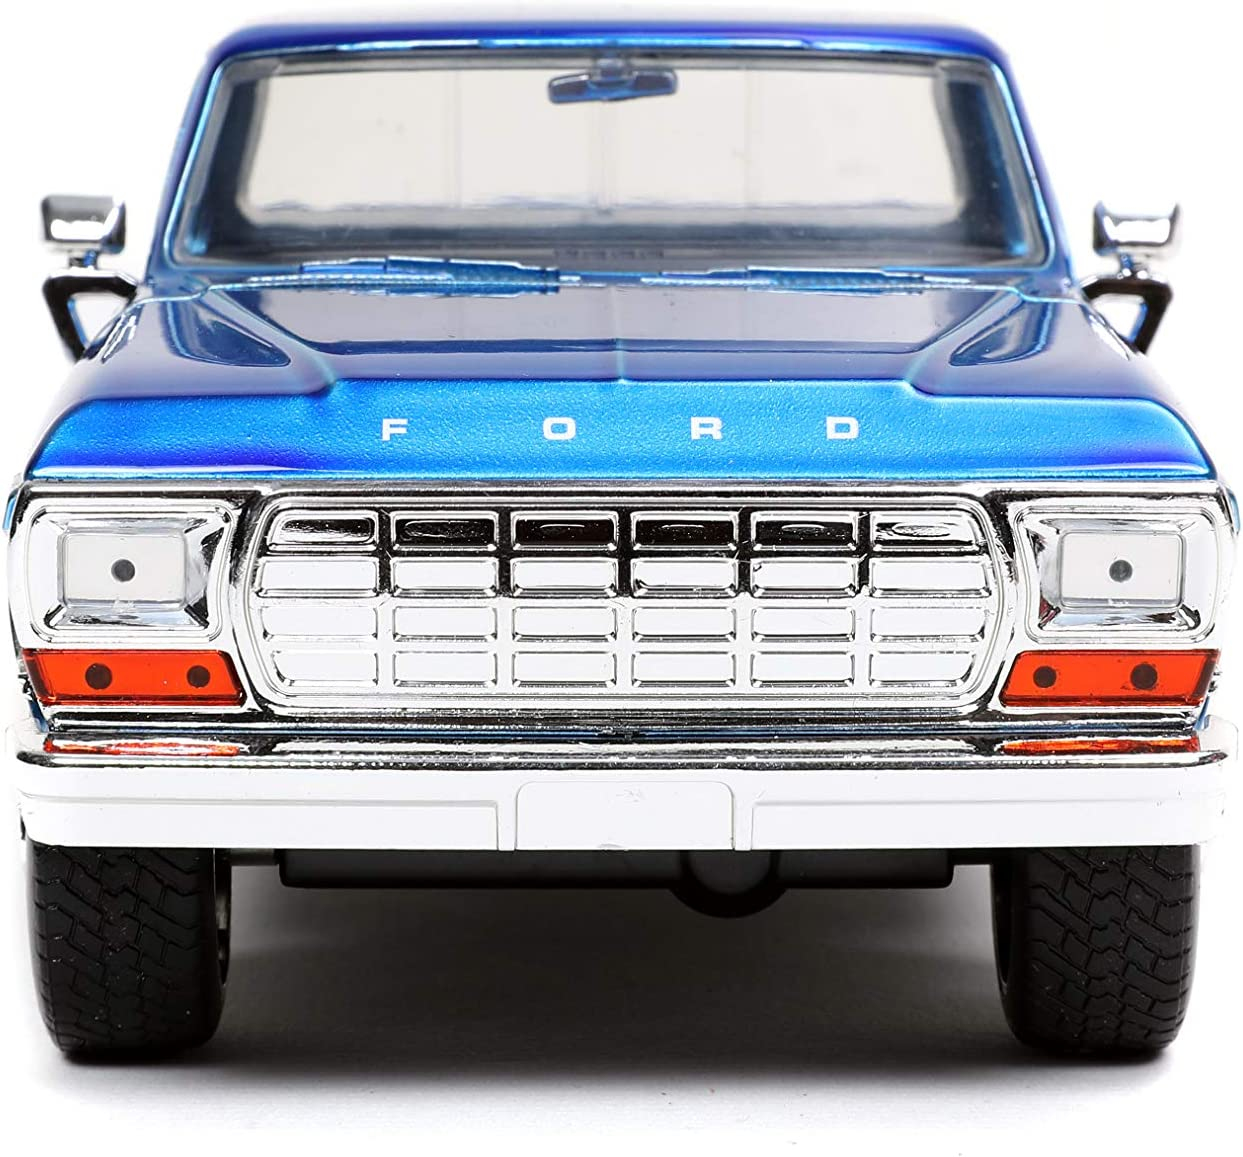 Jada Toys Just Trucks 1:24 1970 Ford F-150 with Rack Die-cast Car Candy Blue Toys for Kids and Adults